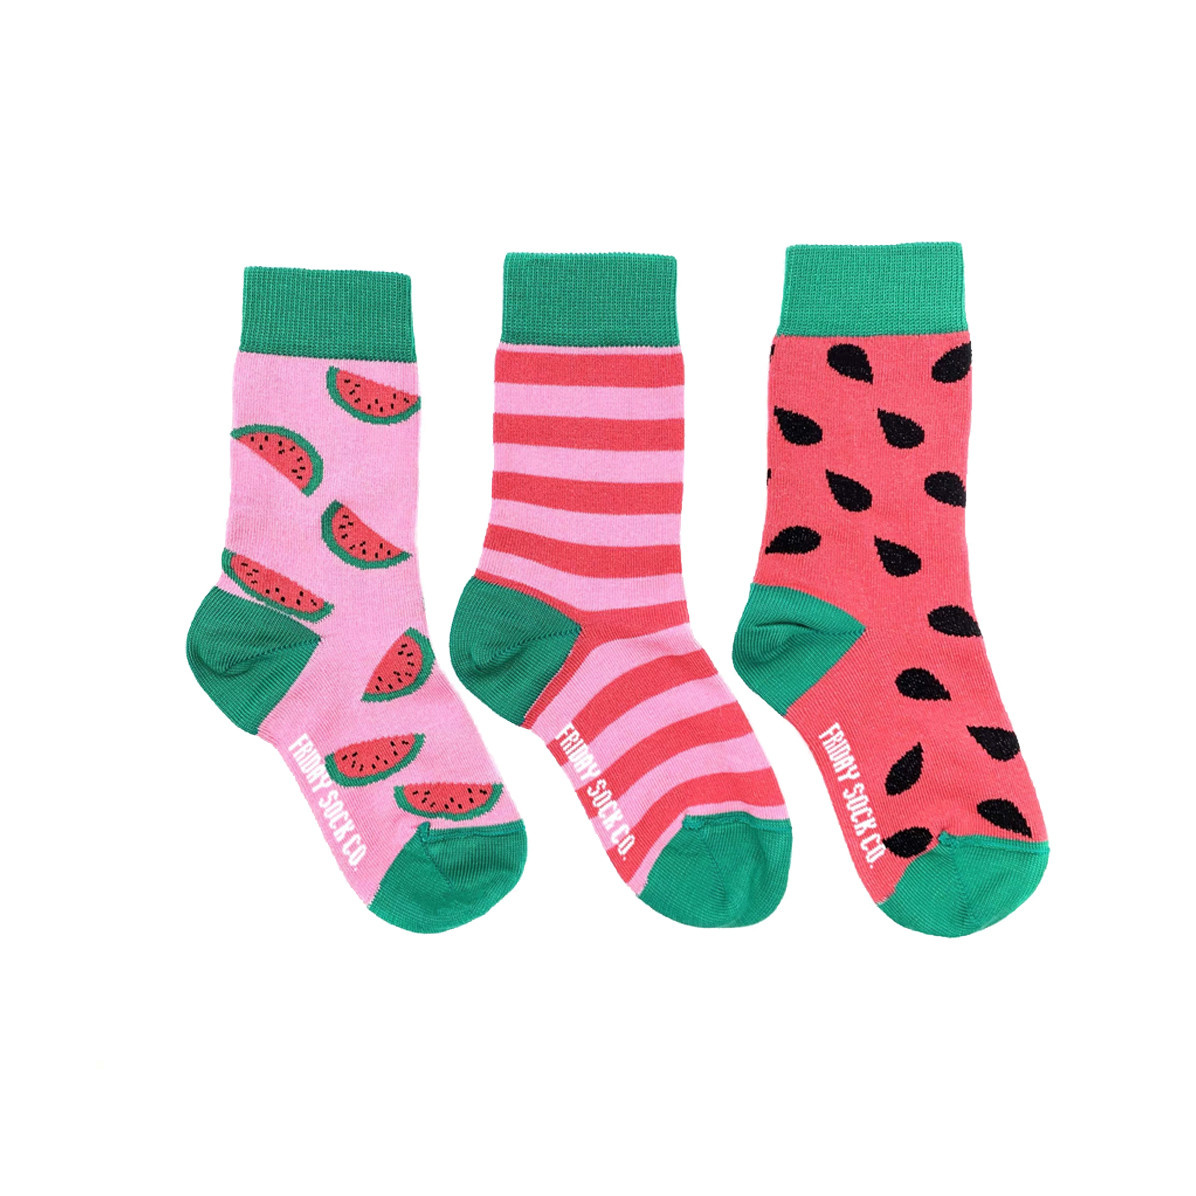 Friday Sock Co. Friday Sock Co. Kids Watermelon Crew